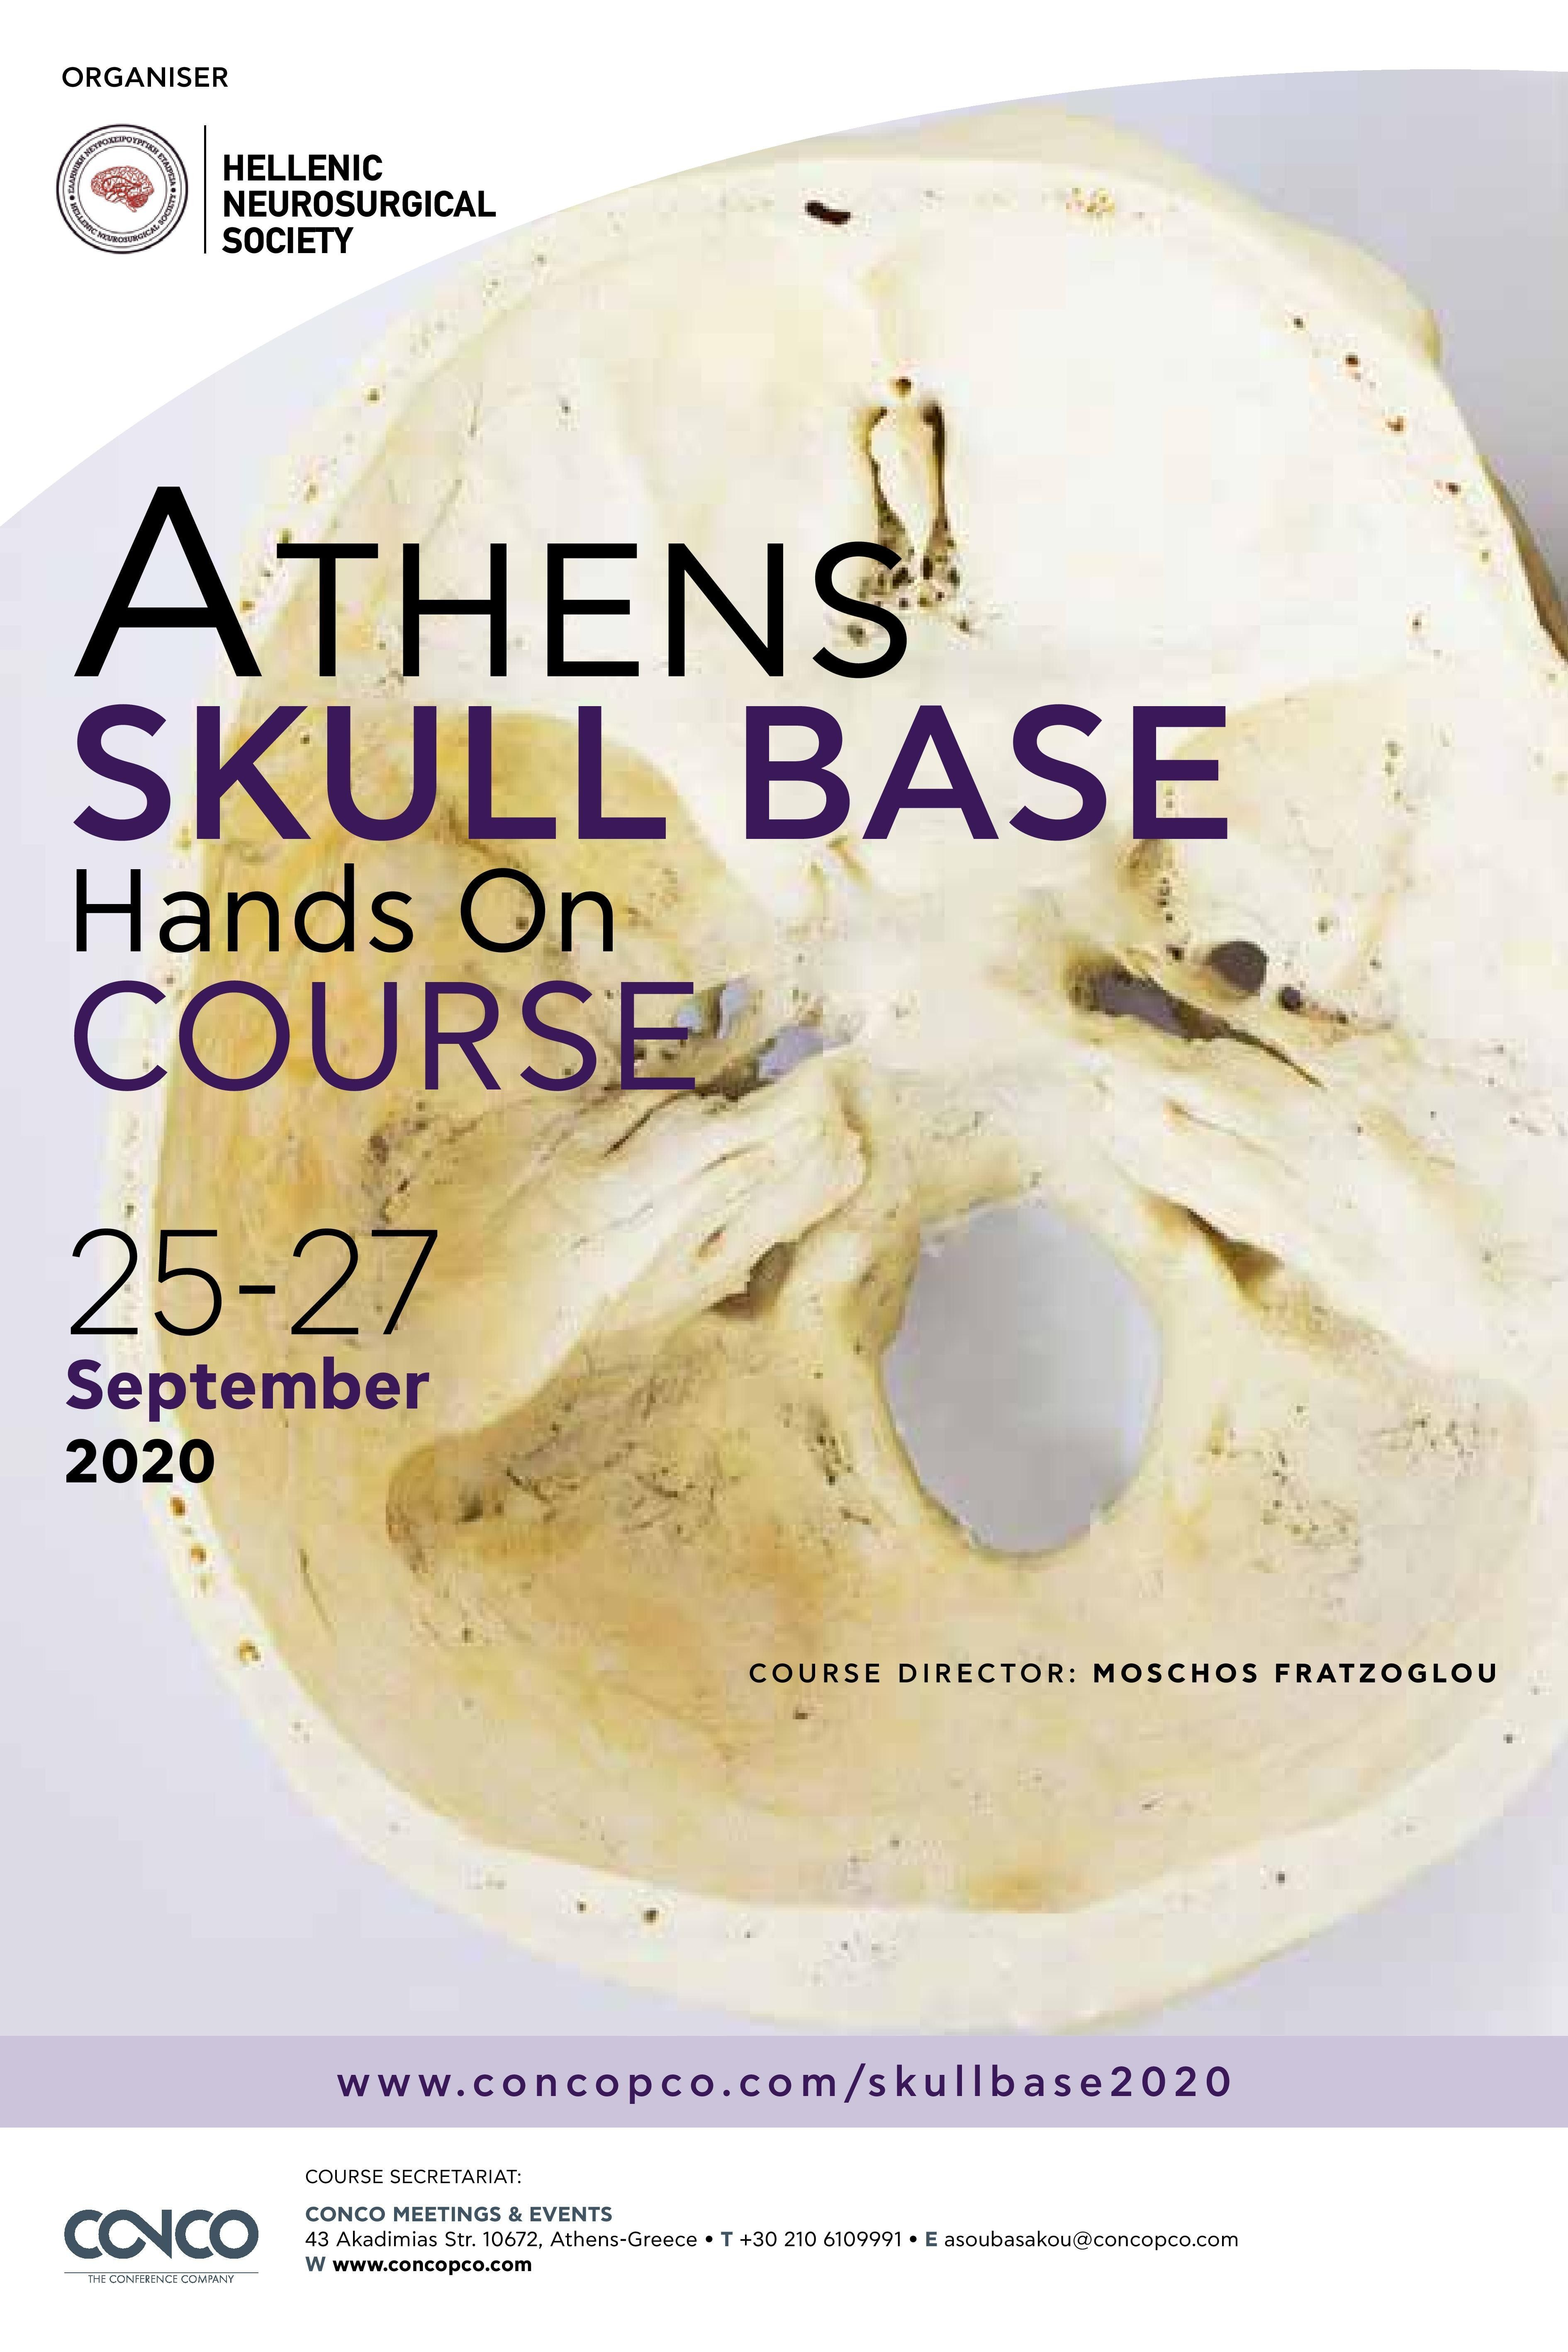 ATHENS SKULL BASE HANDS ON COURSE